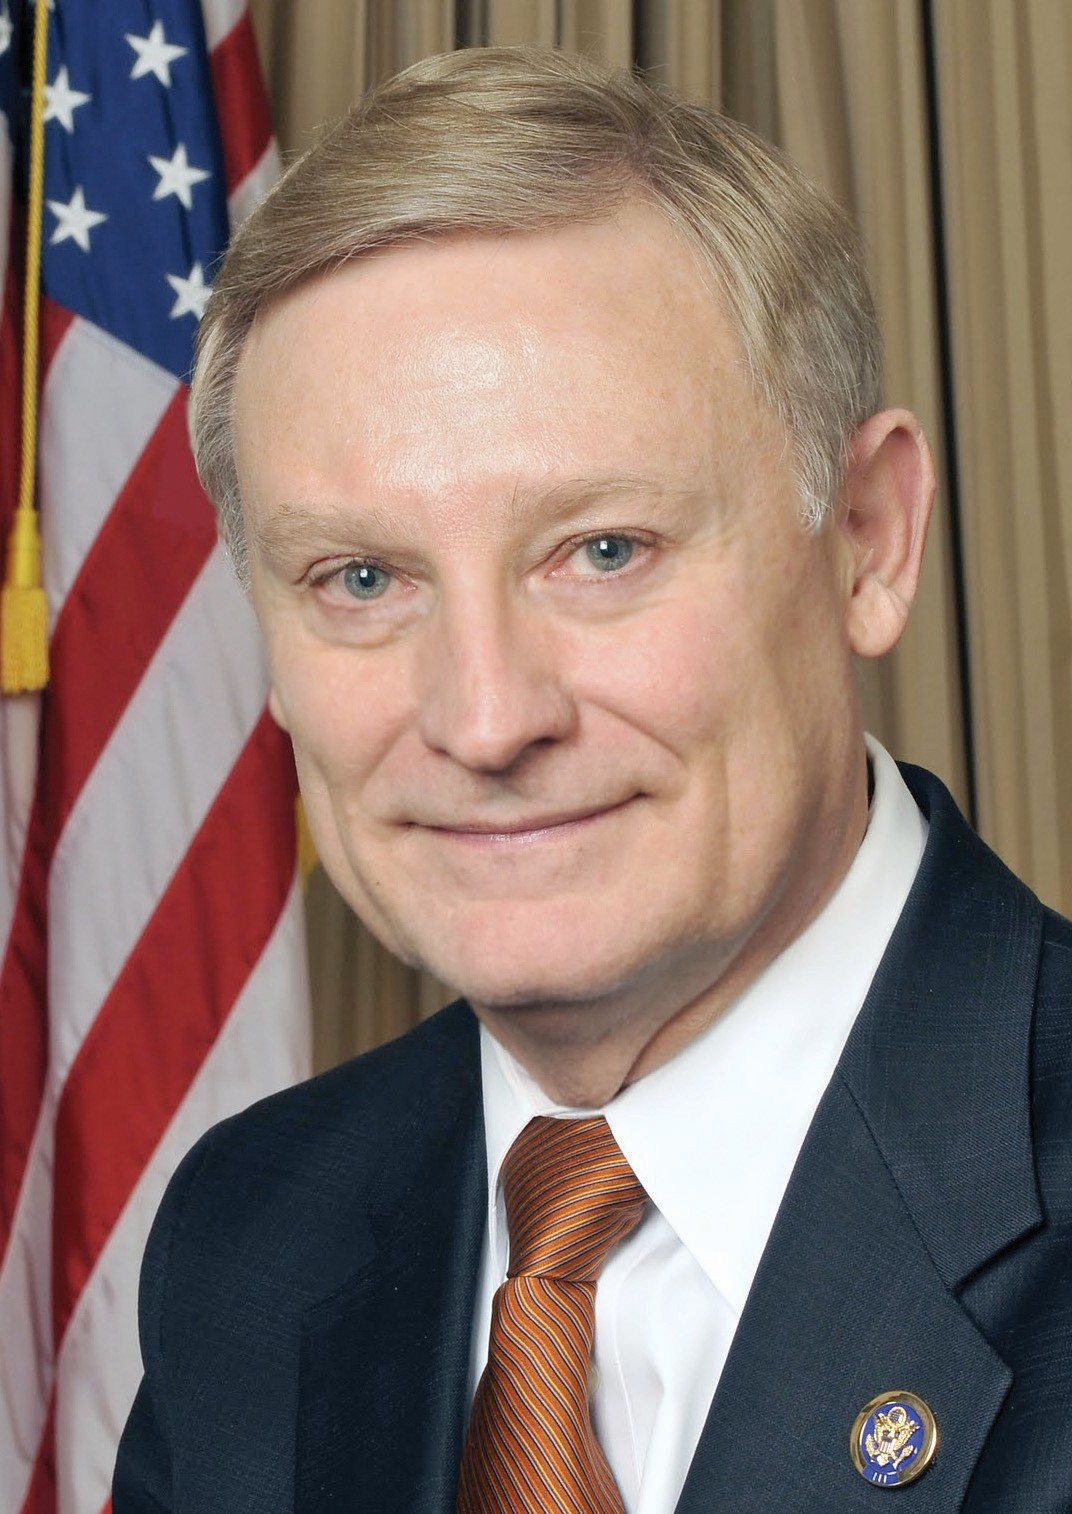 U.S. Congressman Spencer Bachus (R-Vestavia Hills) will report to constituents at the Blount County – Oneonta Chamber of Commerce breakfast Thursday, Jan. 12, at Twin Oaks at Heritage Green. Following breakfast he will meet with county officials at the courthouse, and from 11 a.m. until 1 p.m. he will meet with mayors and council members of Blount County municipalities at a luncheon at Limestone Springs. Bachus is serving his 10th term in the U.S. House of Representatives and currently serves as chairman of the influential House Financial Services Committee. He is a graduate of Auburn University and the University of Alabama School of Law.